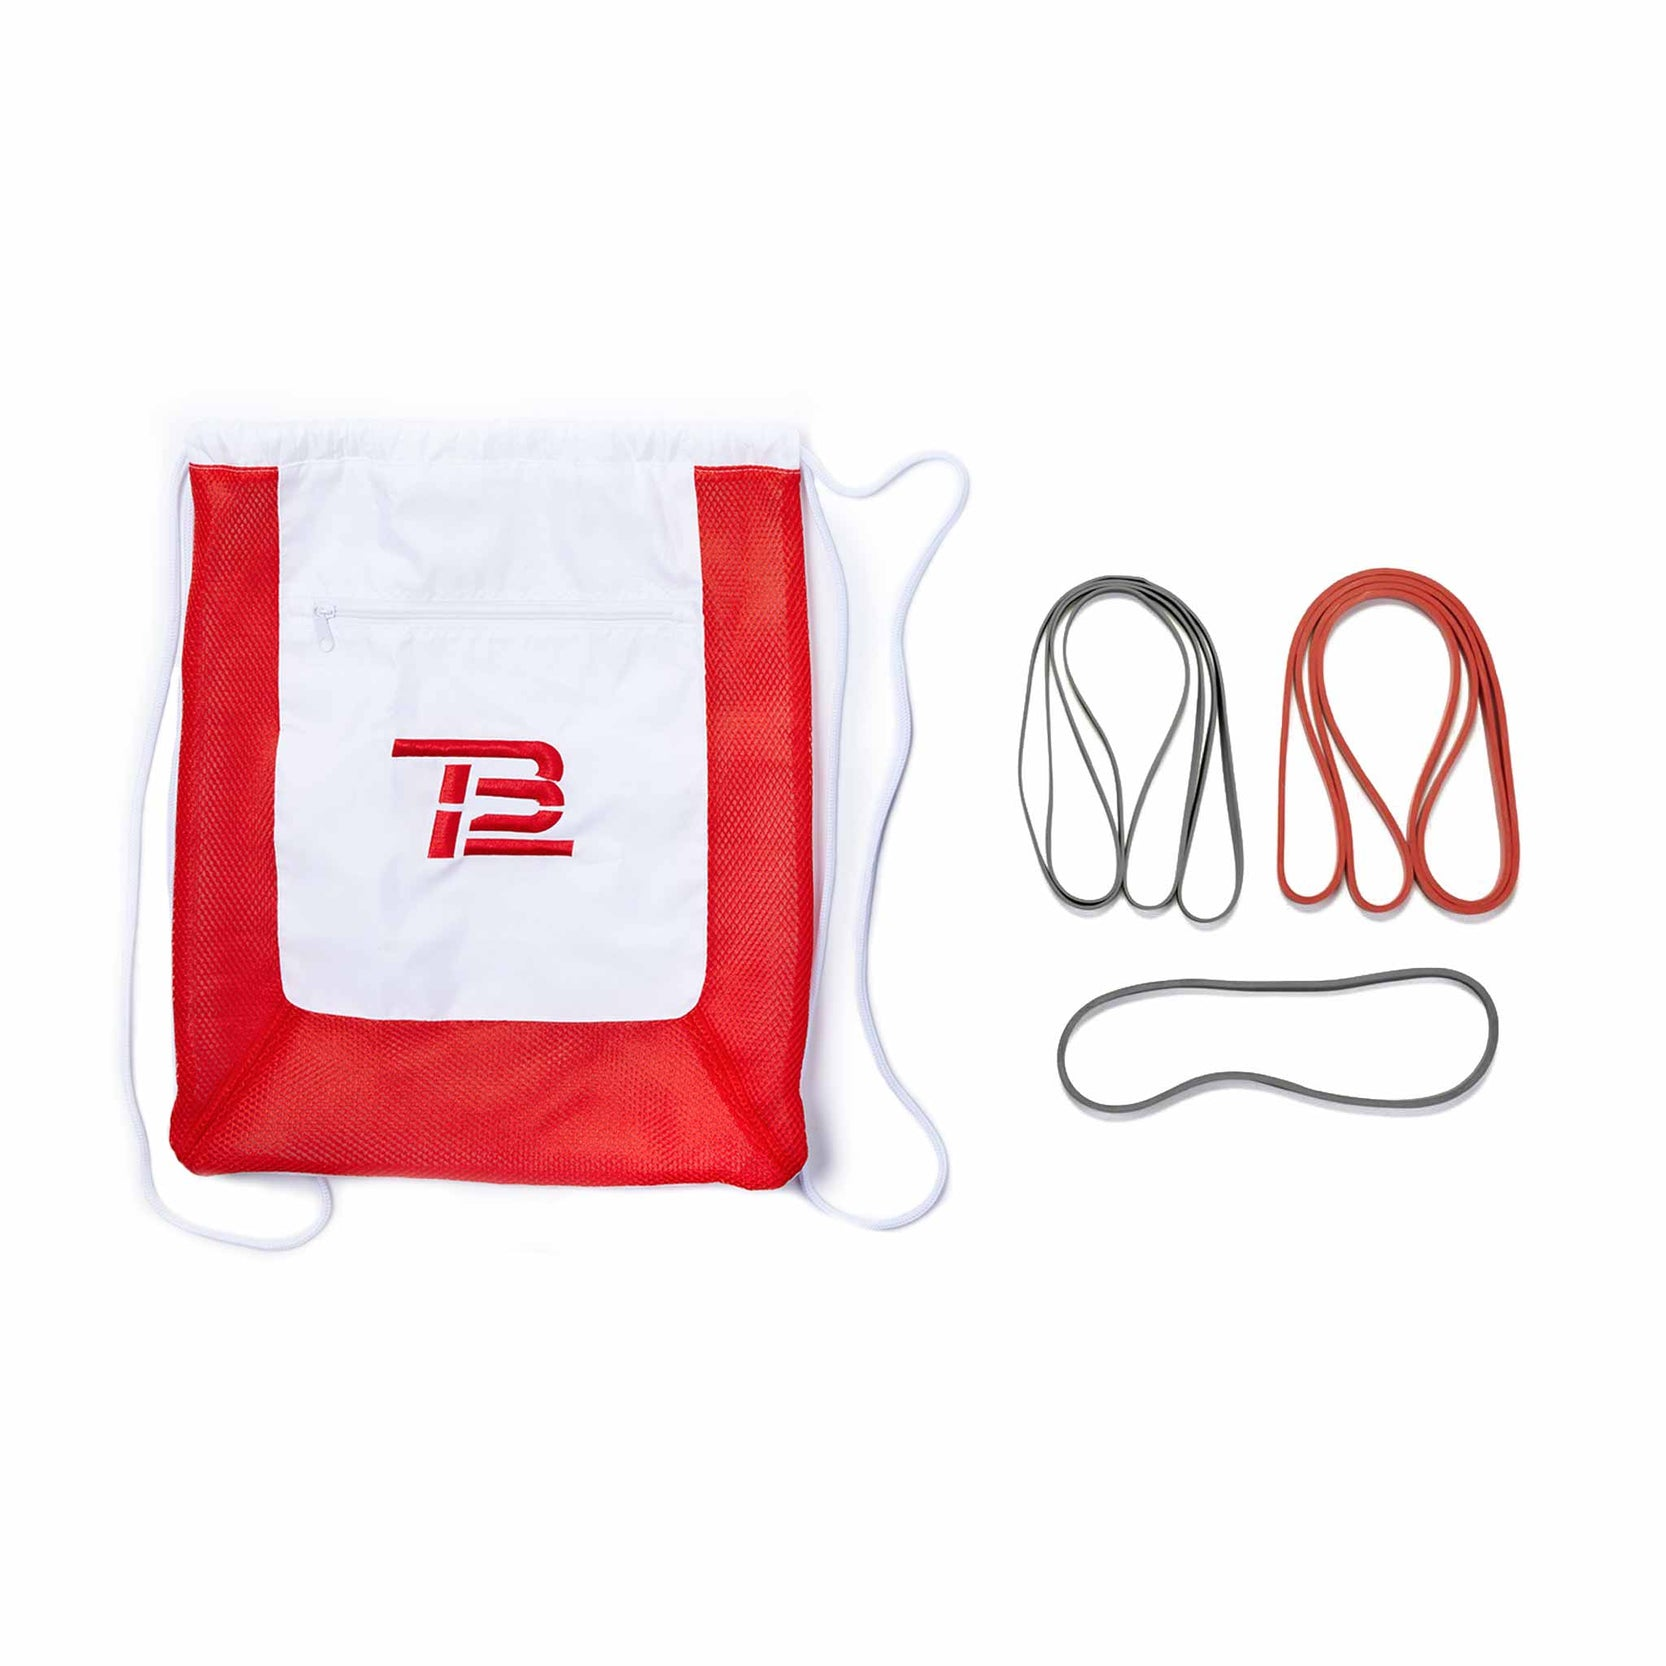 TB12™ On-the-Go Looped Band Kit Level 1